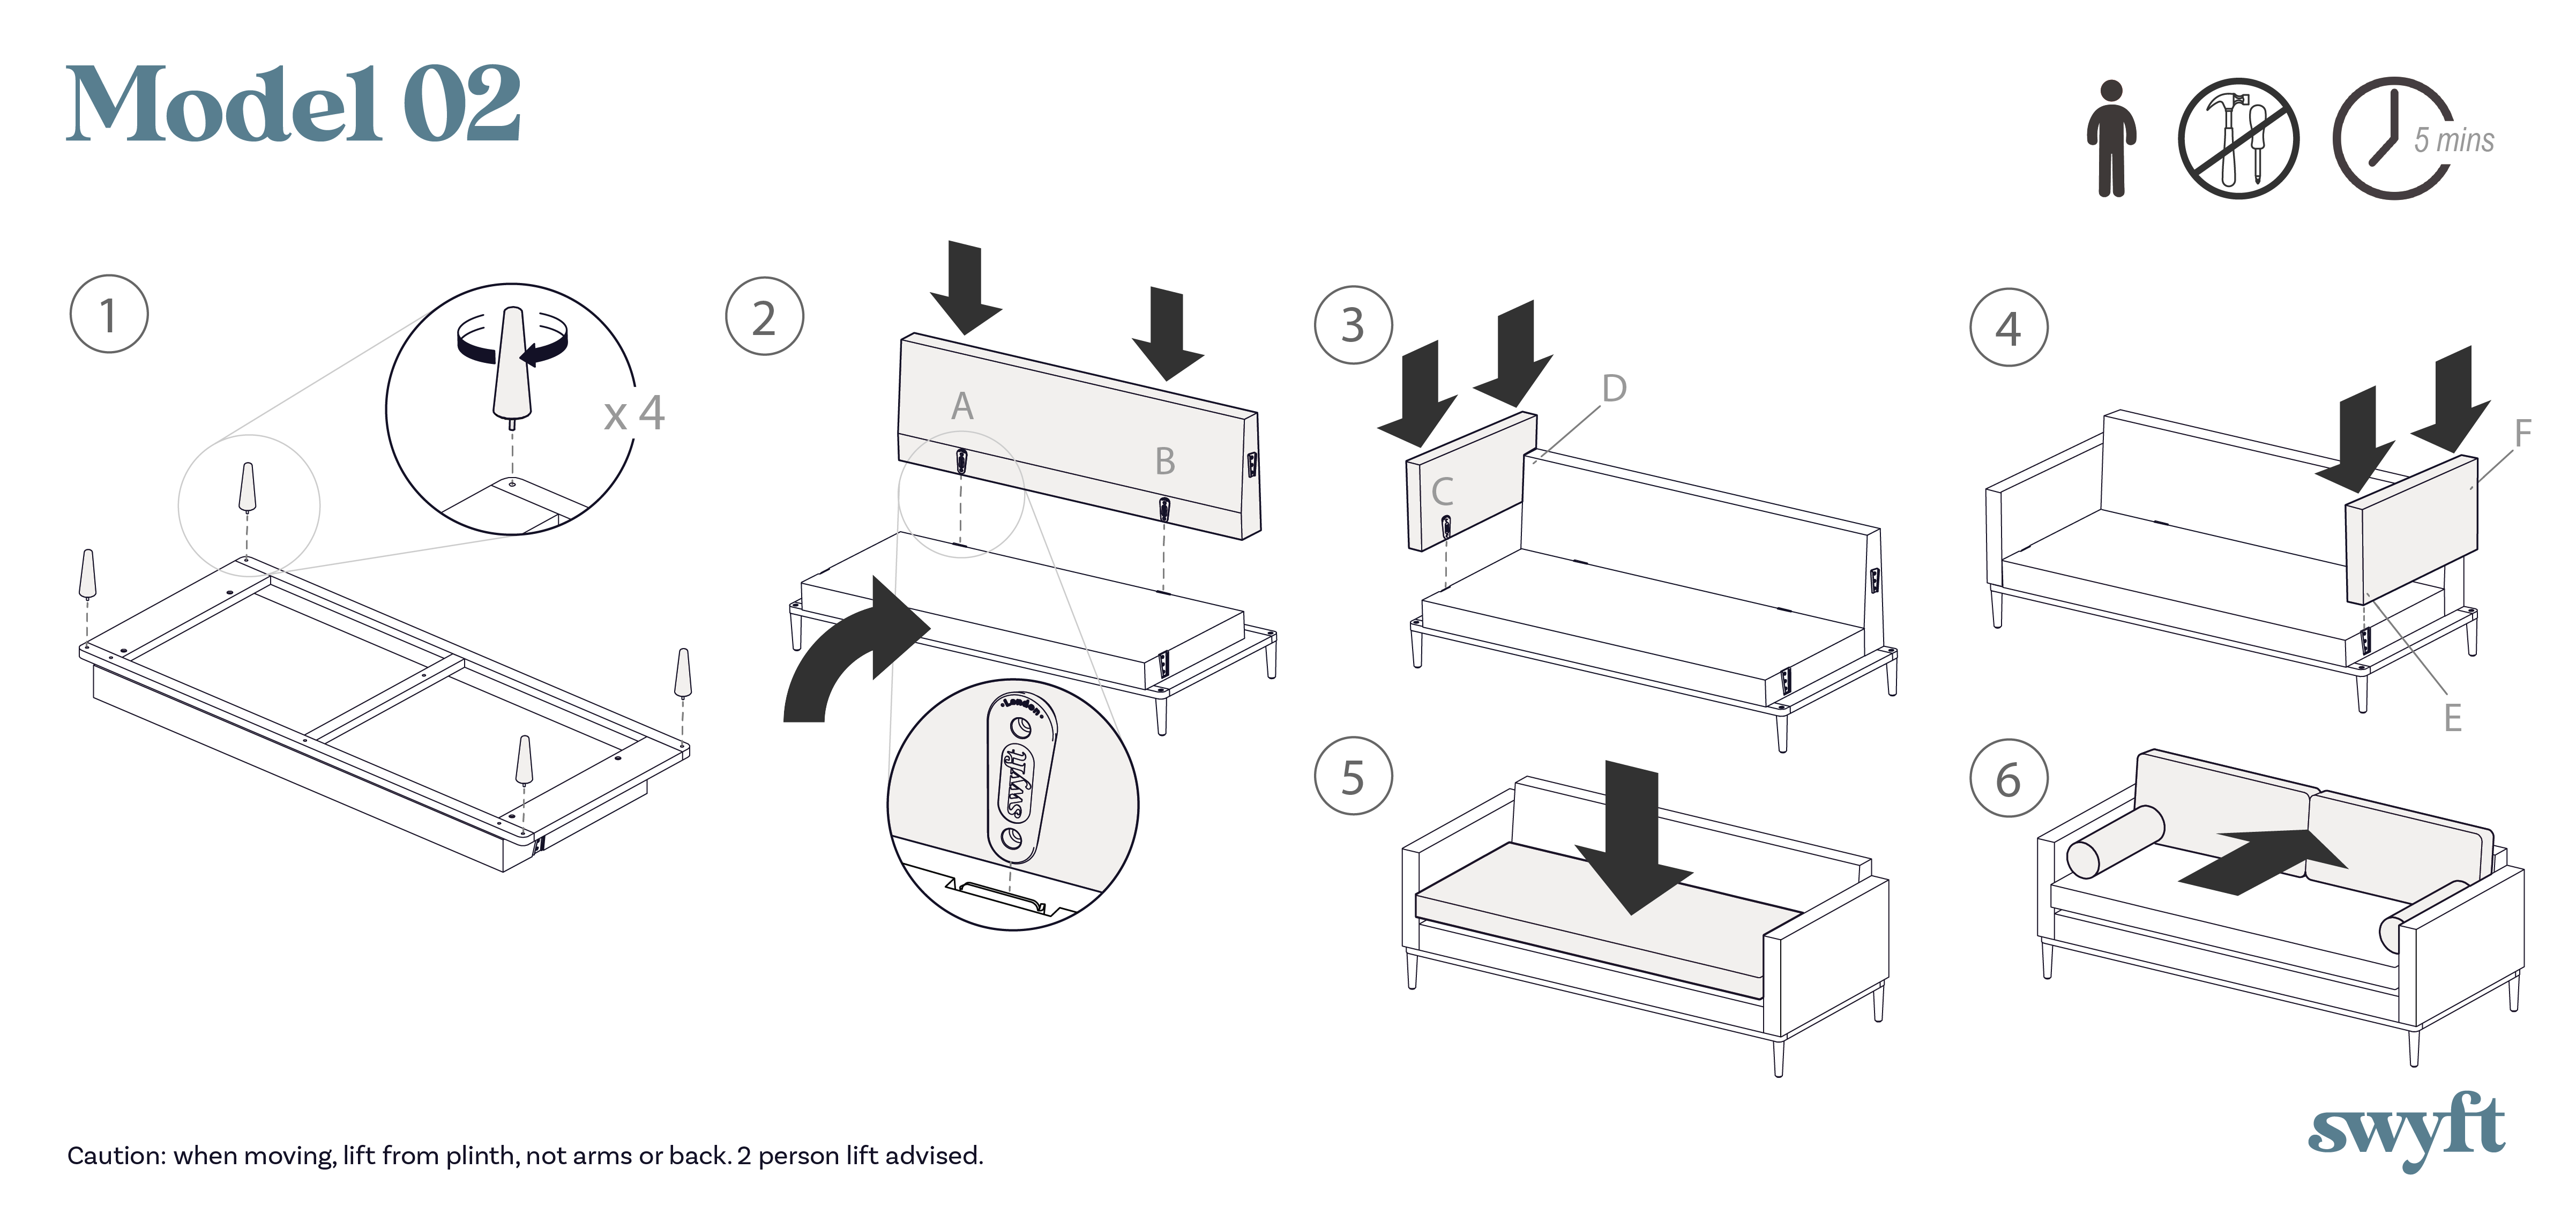 Model 02 assembly instruction drawings